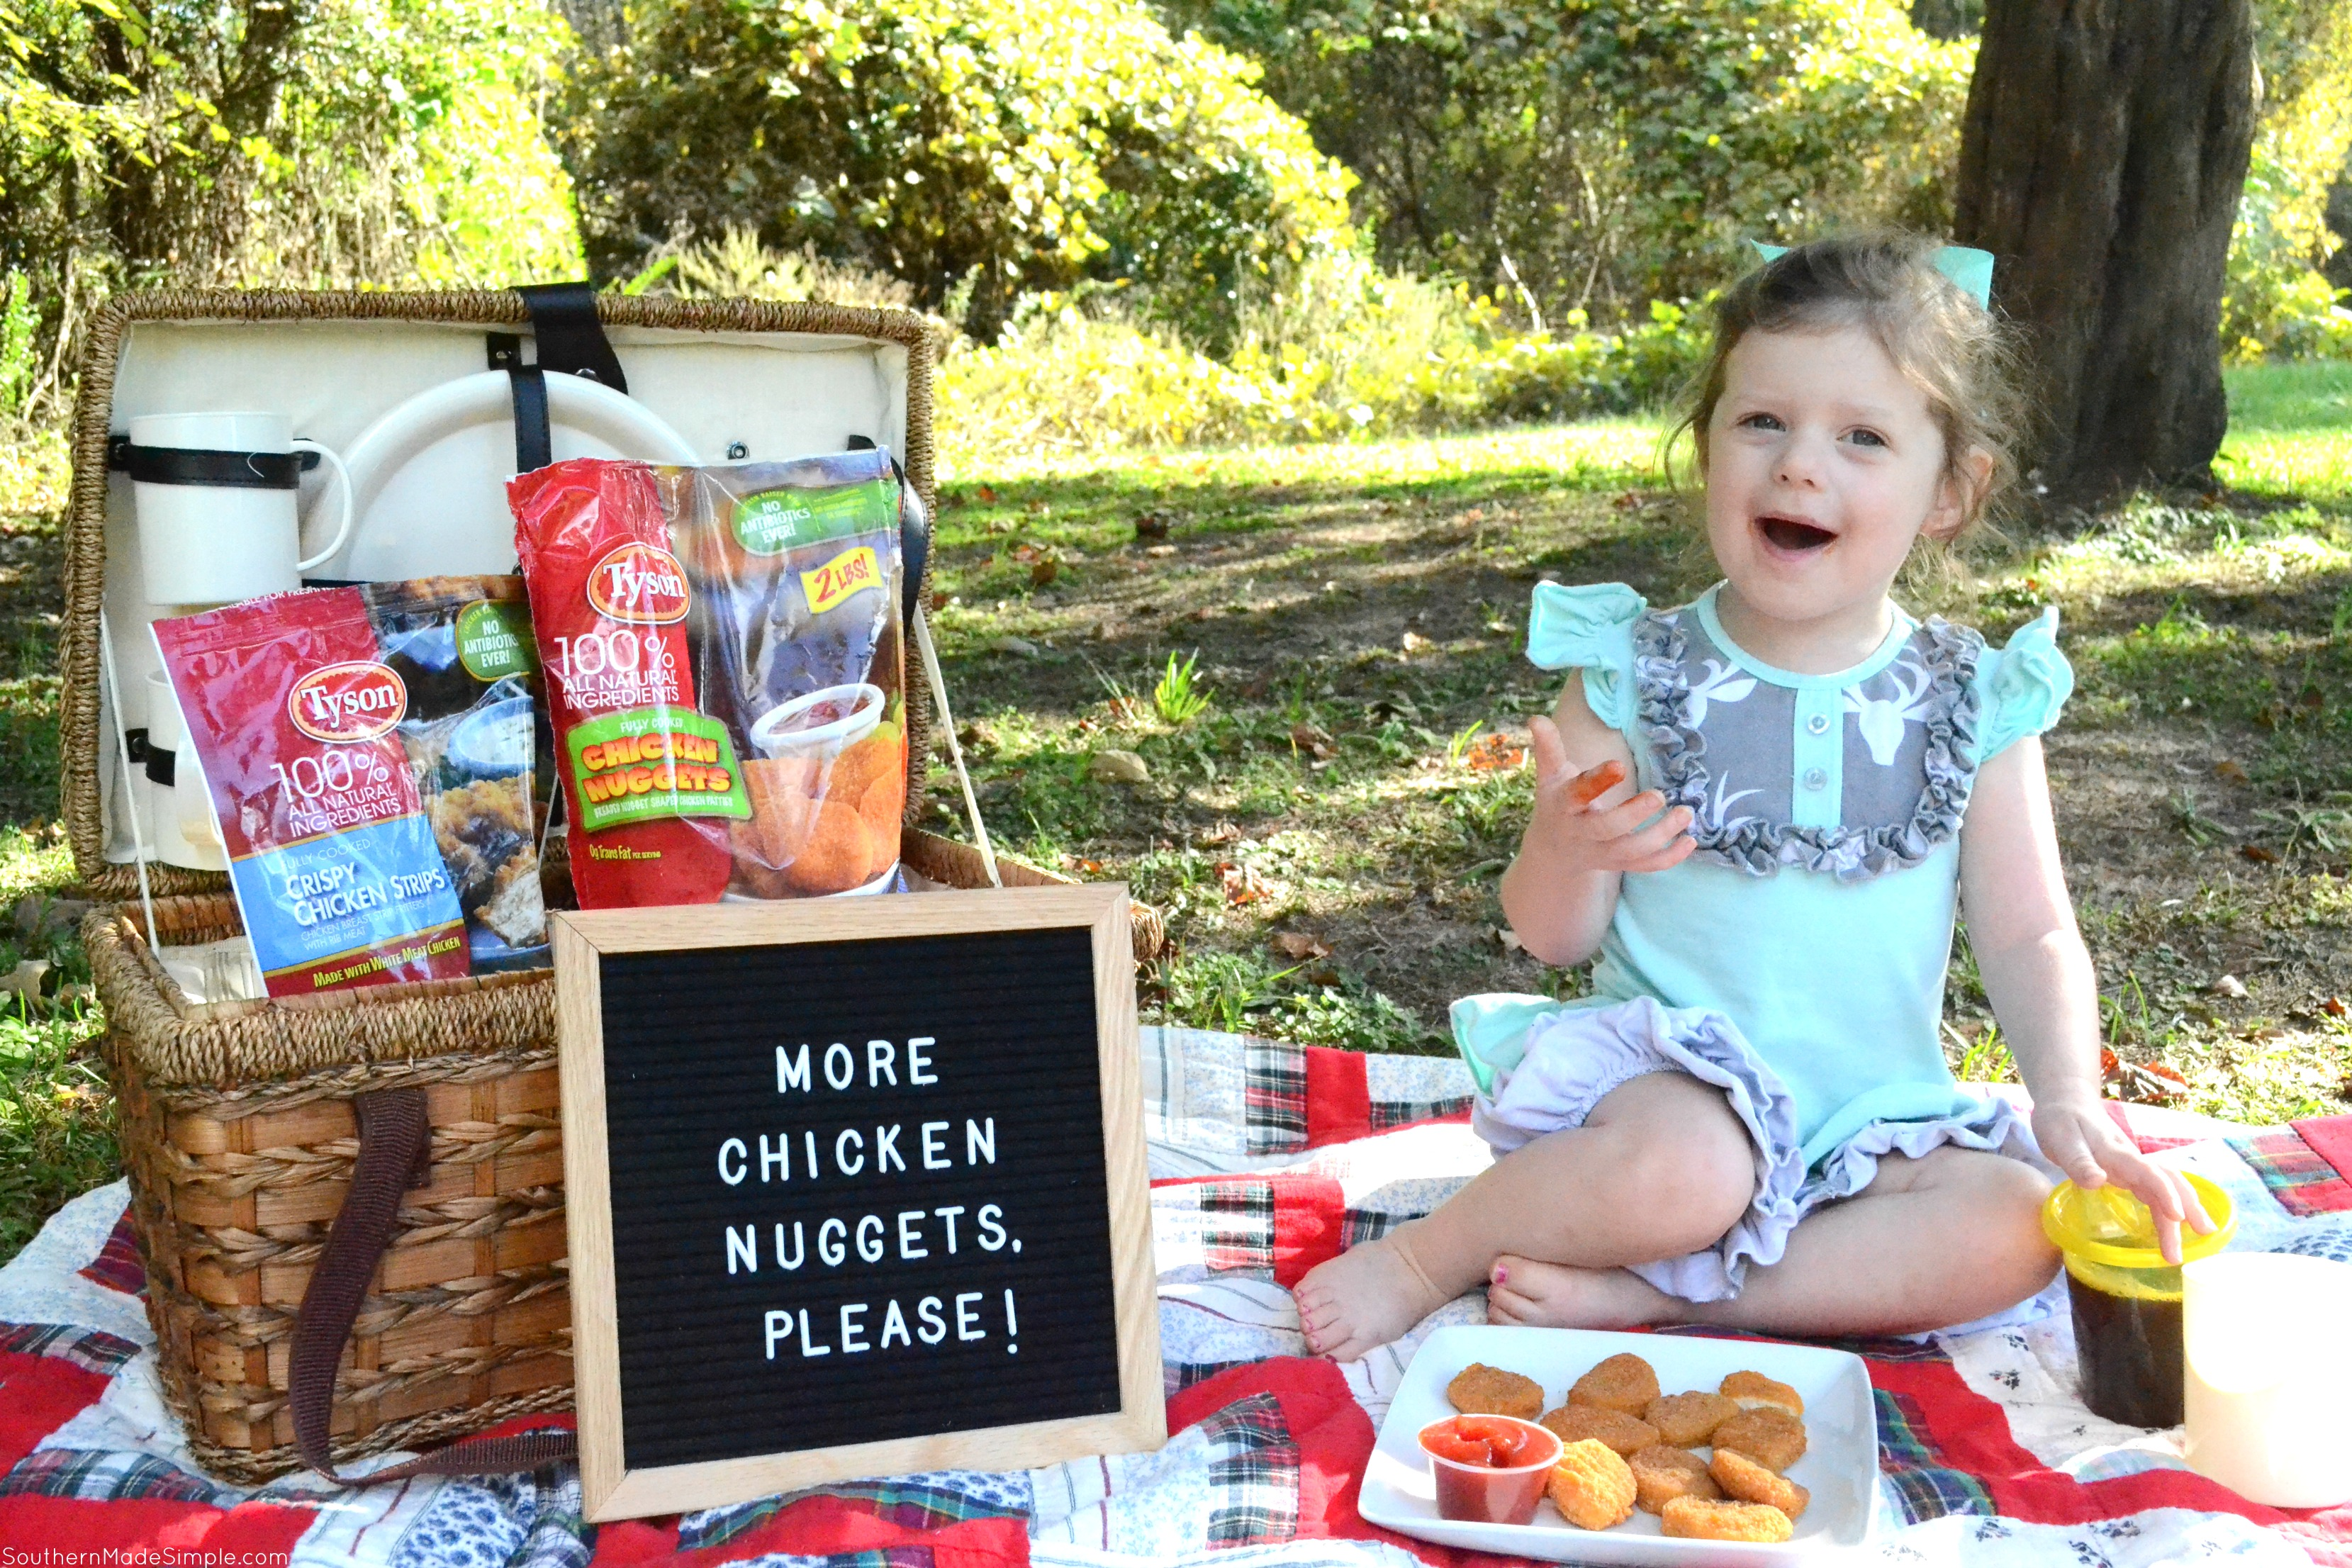 """My toddler has proven to be a pretty picky eater, and most days all she's willing to eat is her beloved chicken nuggets. Since discovering specially marked packages of Tyson Chicken Nuggets at Publix with the """"No Antibiotics Ever"""" seal, I'm happy to give in to her picky habits!"""